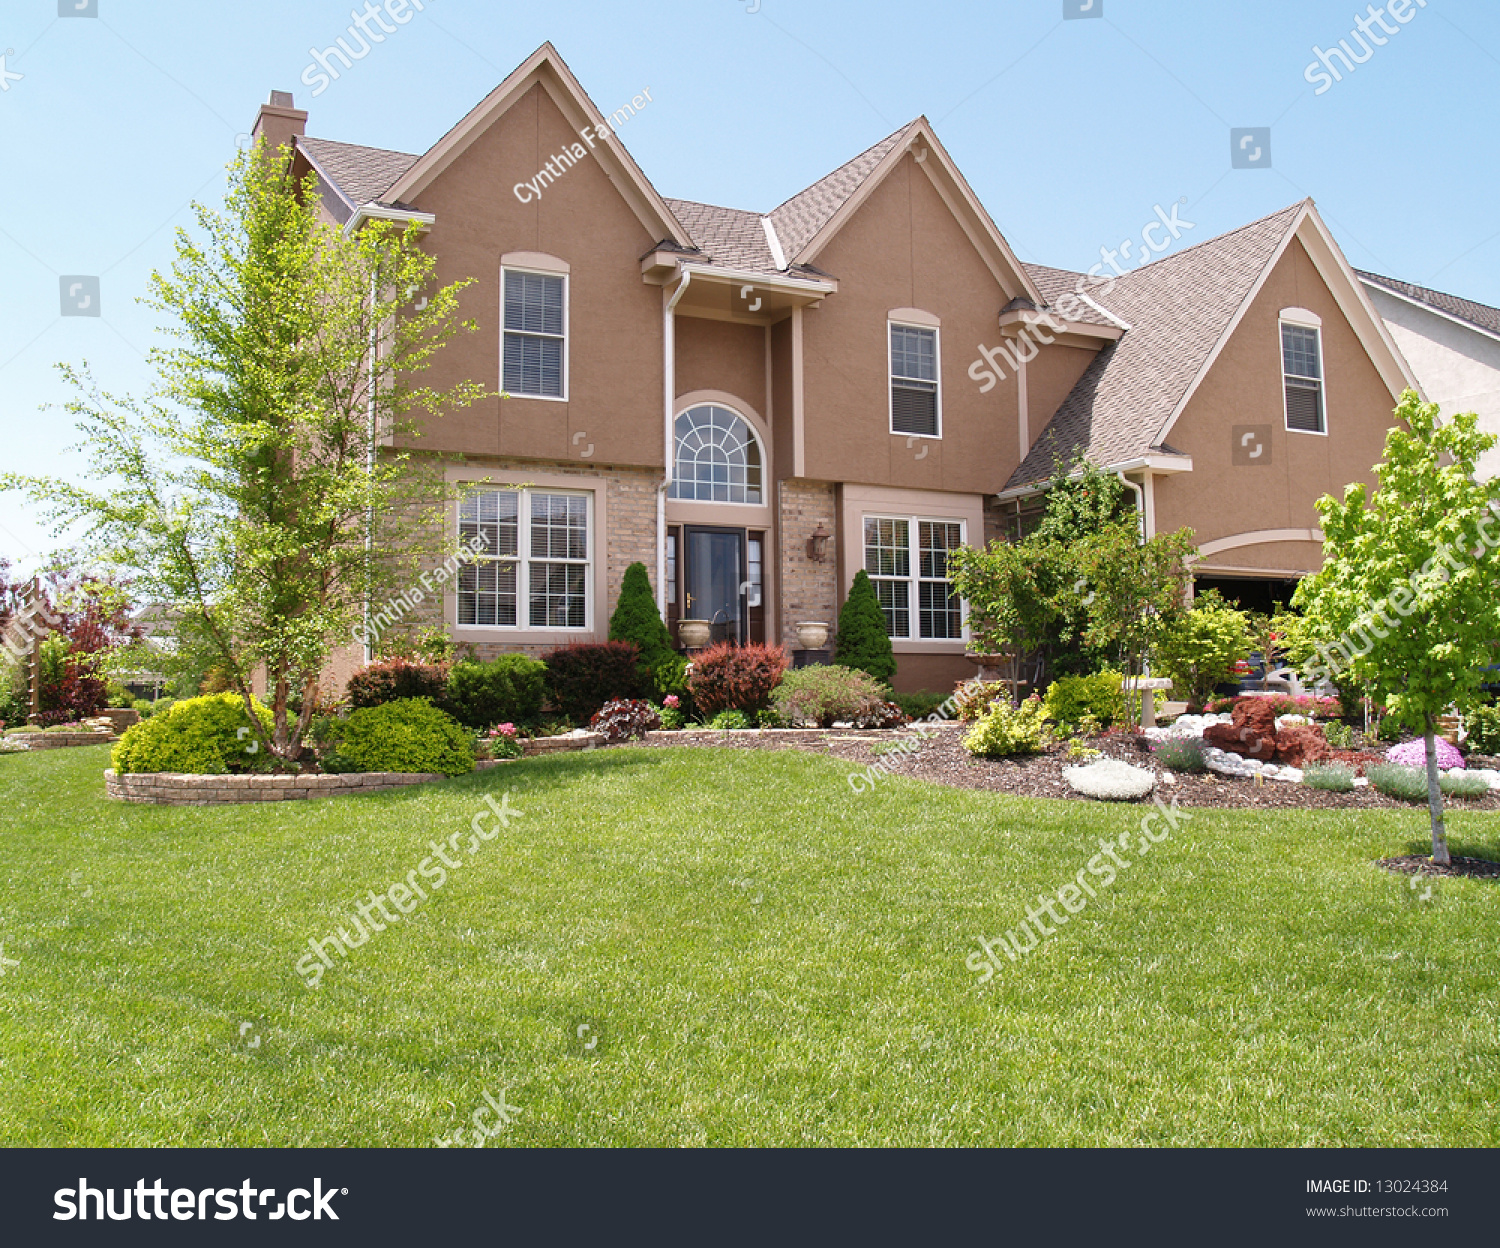 front exterior modern stucco house stock photo 13024384 - shutterstock